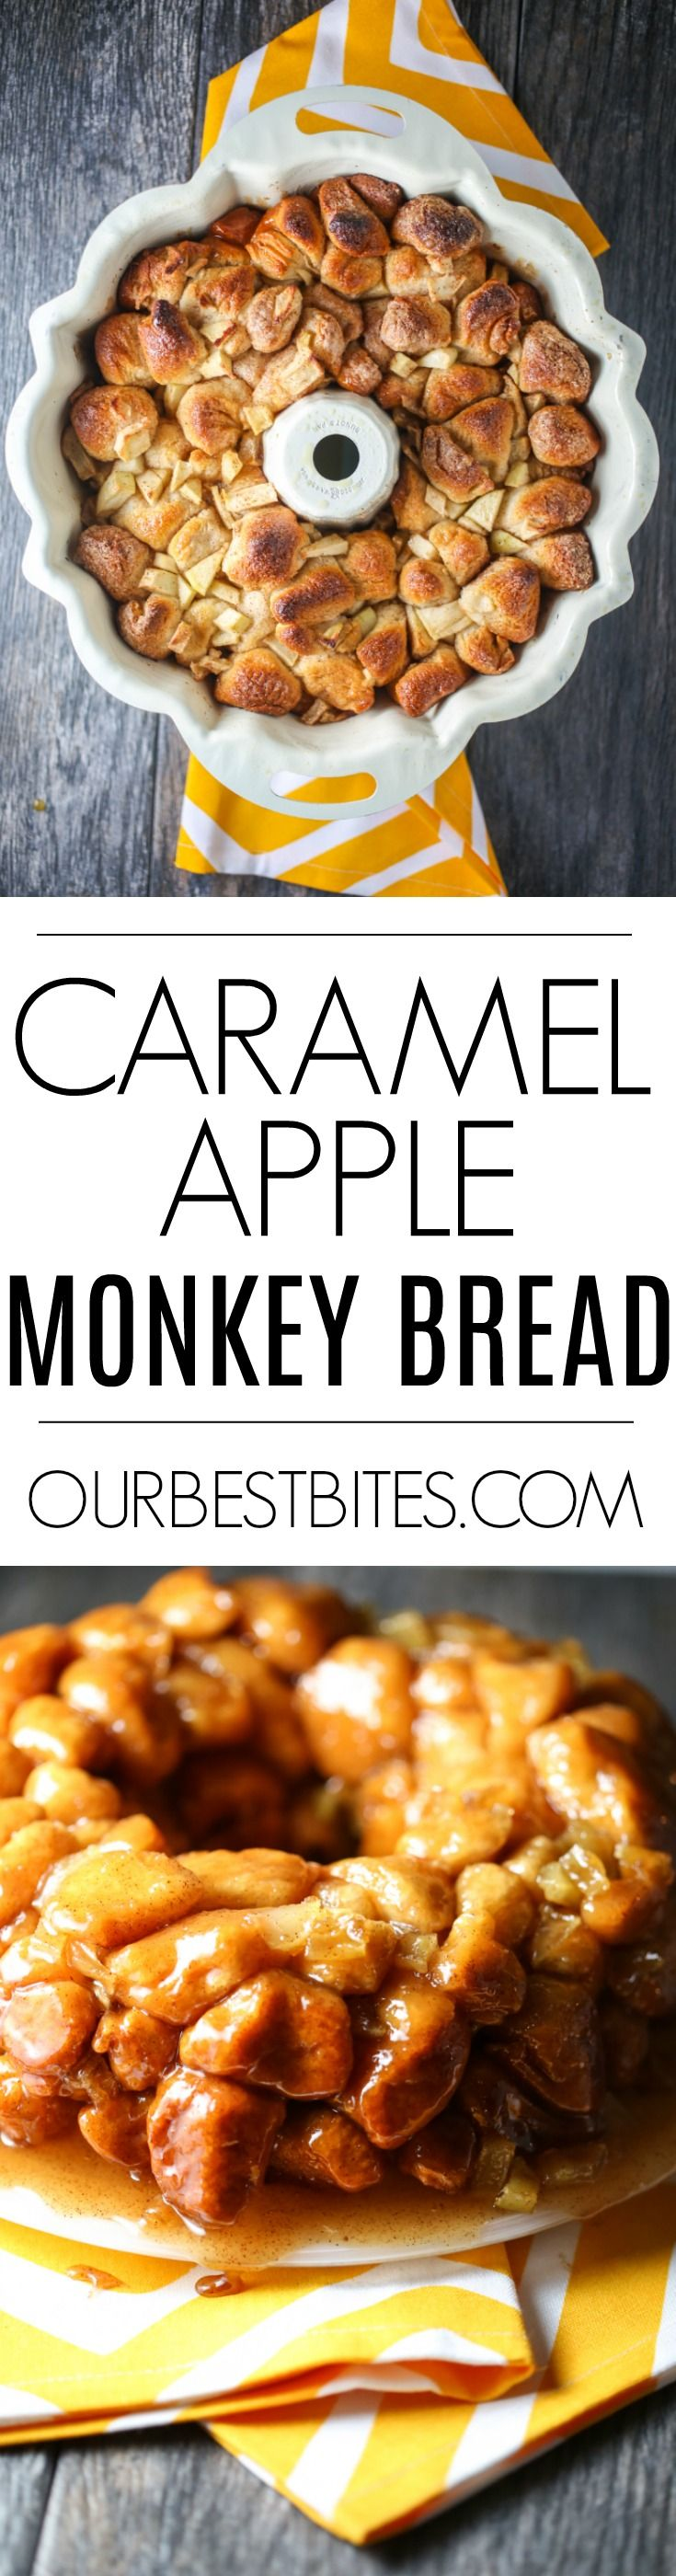 Monkey Bread: Apples. Fall spices. Caramel Apple Monkey Bread only takes a few minutes more than the traditional version and it's a fun (and amazing) fall variation on the original! via @ourbestbites